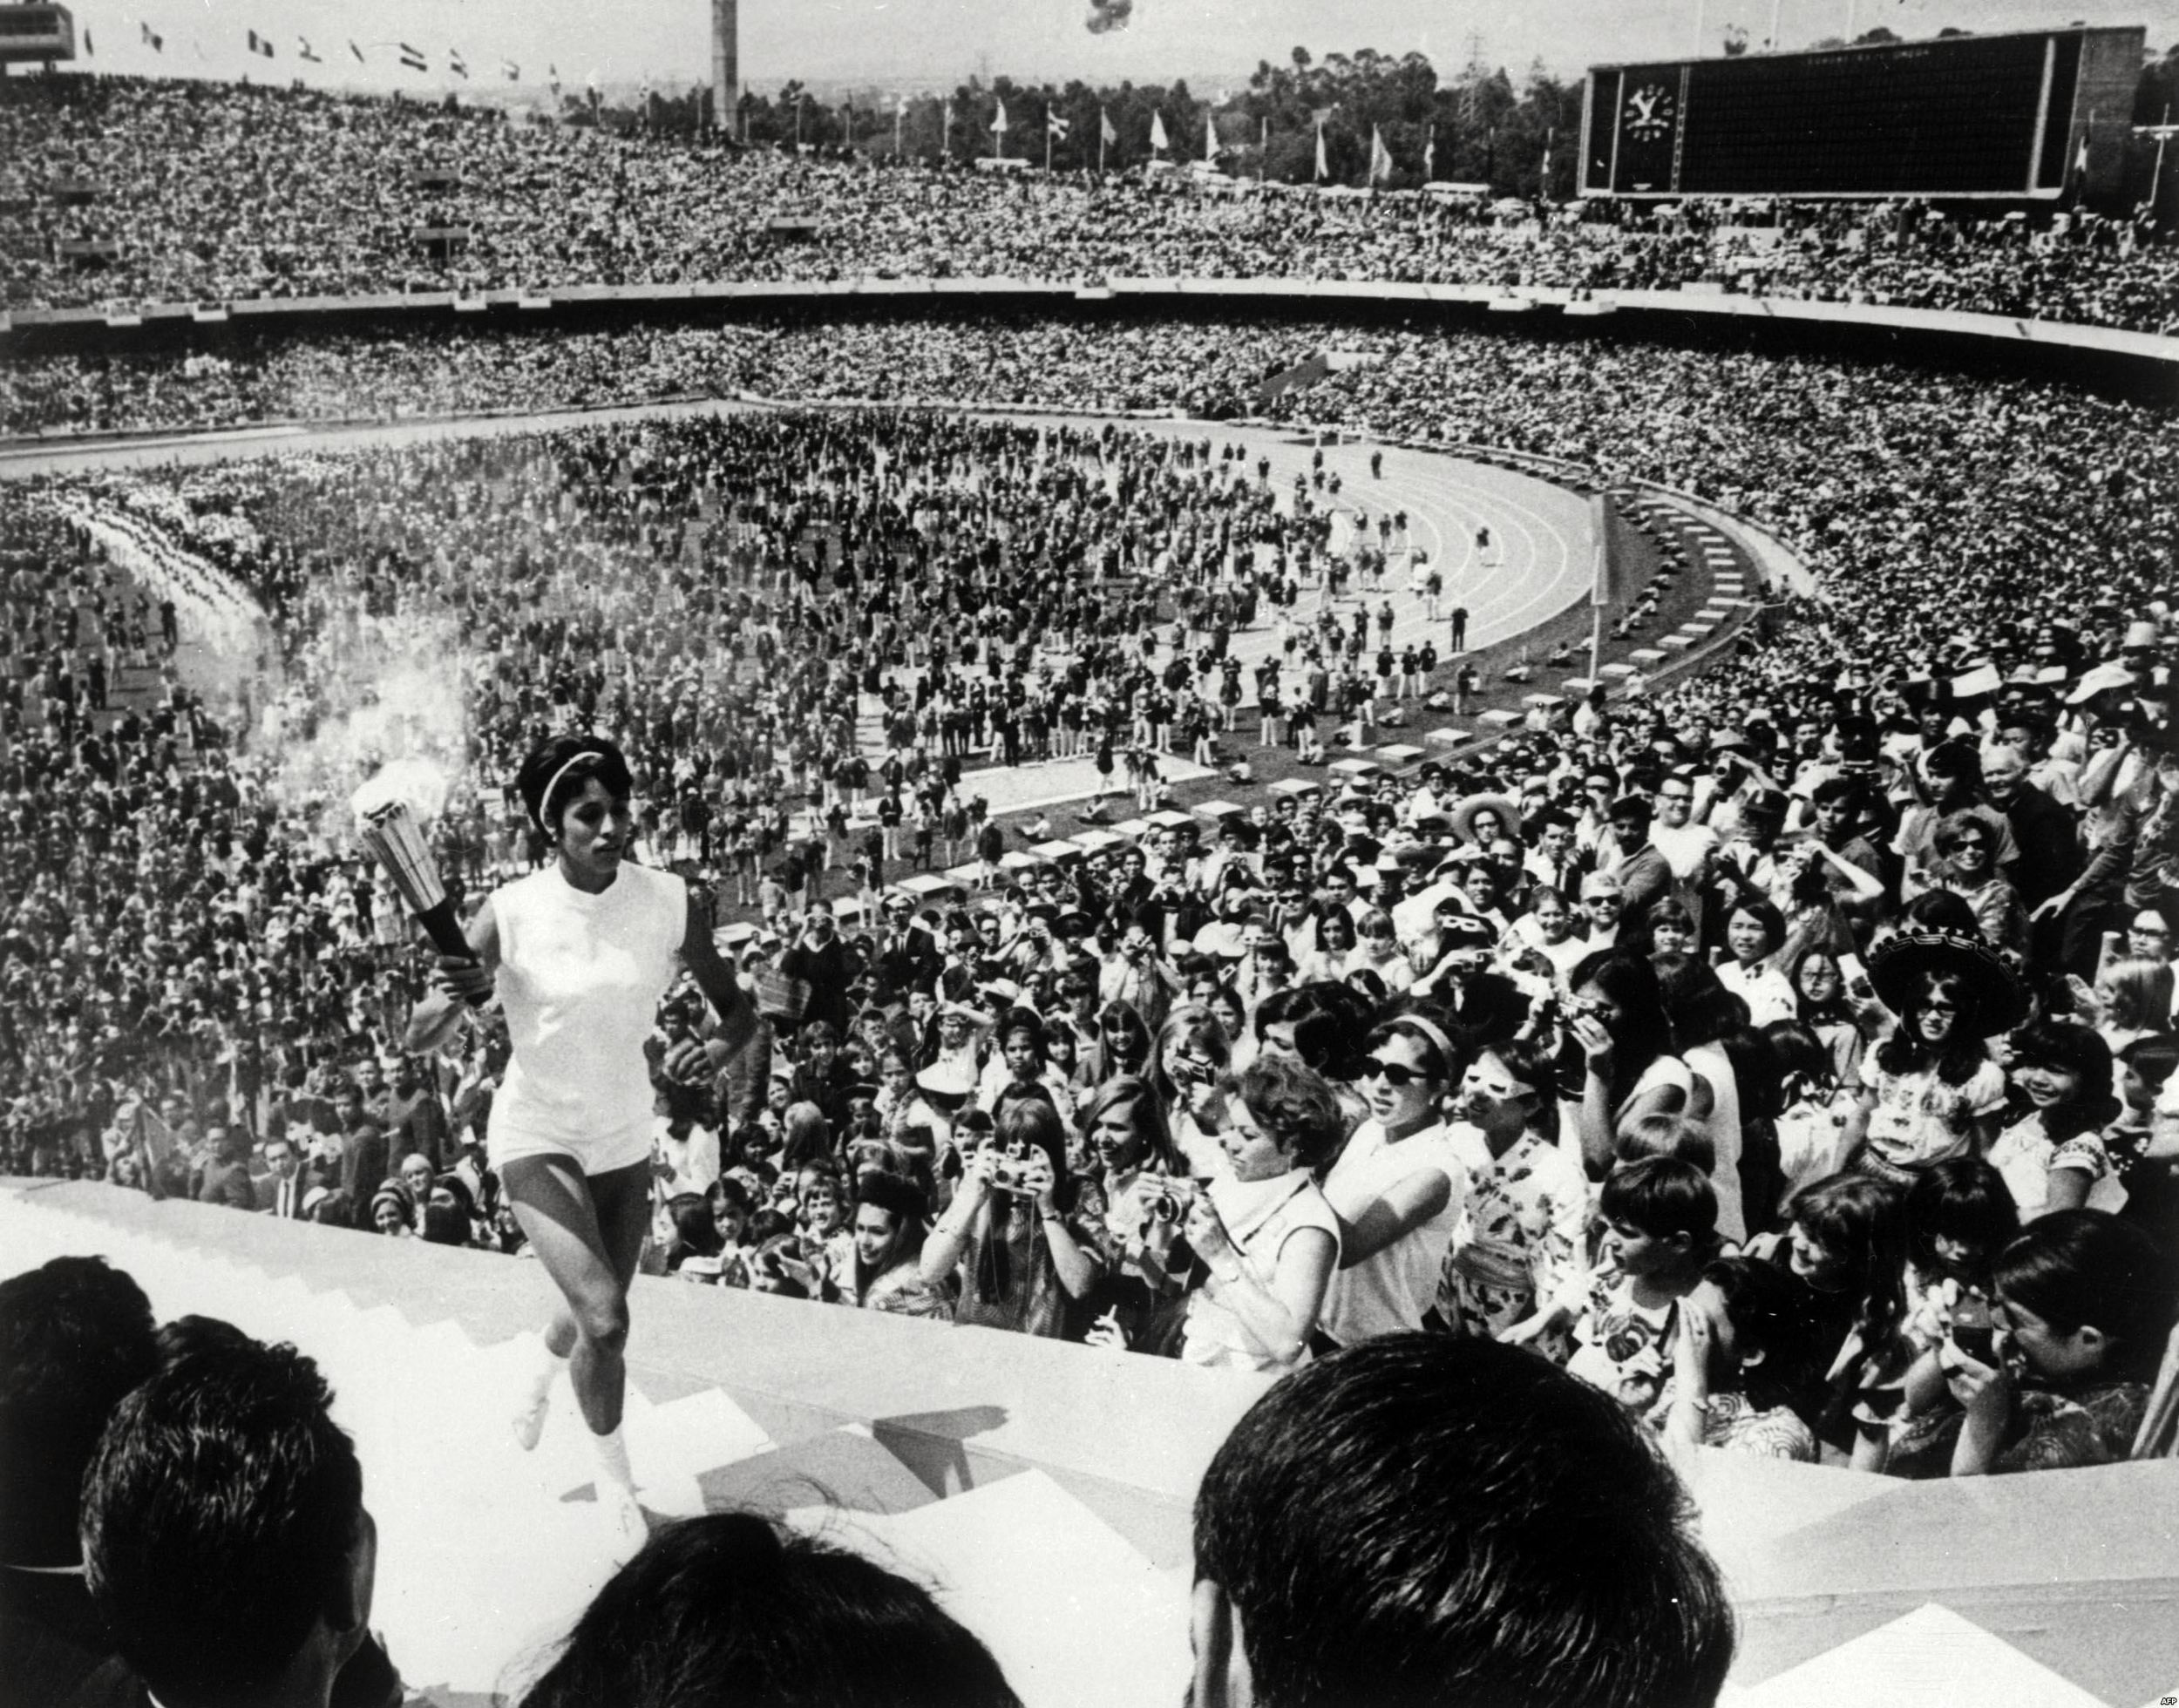 Basilio was a Mexican track and field athlete who competed in several disciplines. Although she failed to medal at the '68 Olympics in her home country, one of the most enduring images of the Games is that of 20 year old Basilio running into the stadium and lighting the Olympic cauldron.  In doing so, she became the first female in Olympic history to hold the honour.